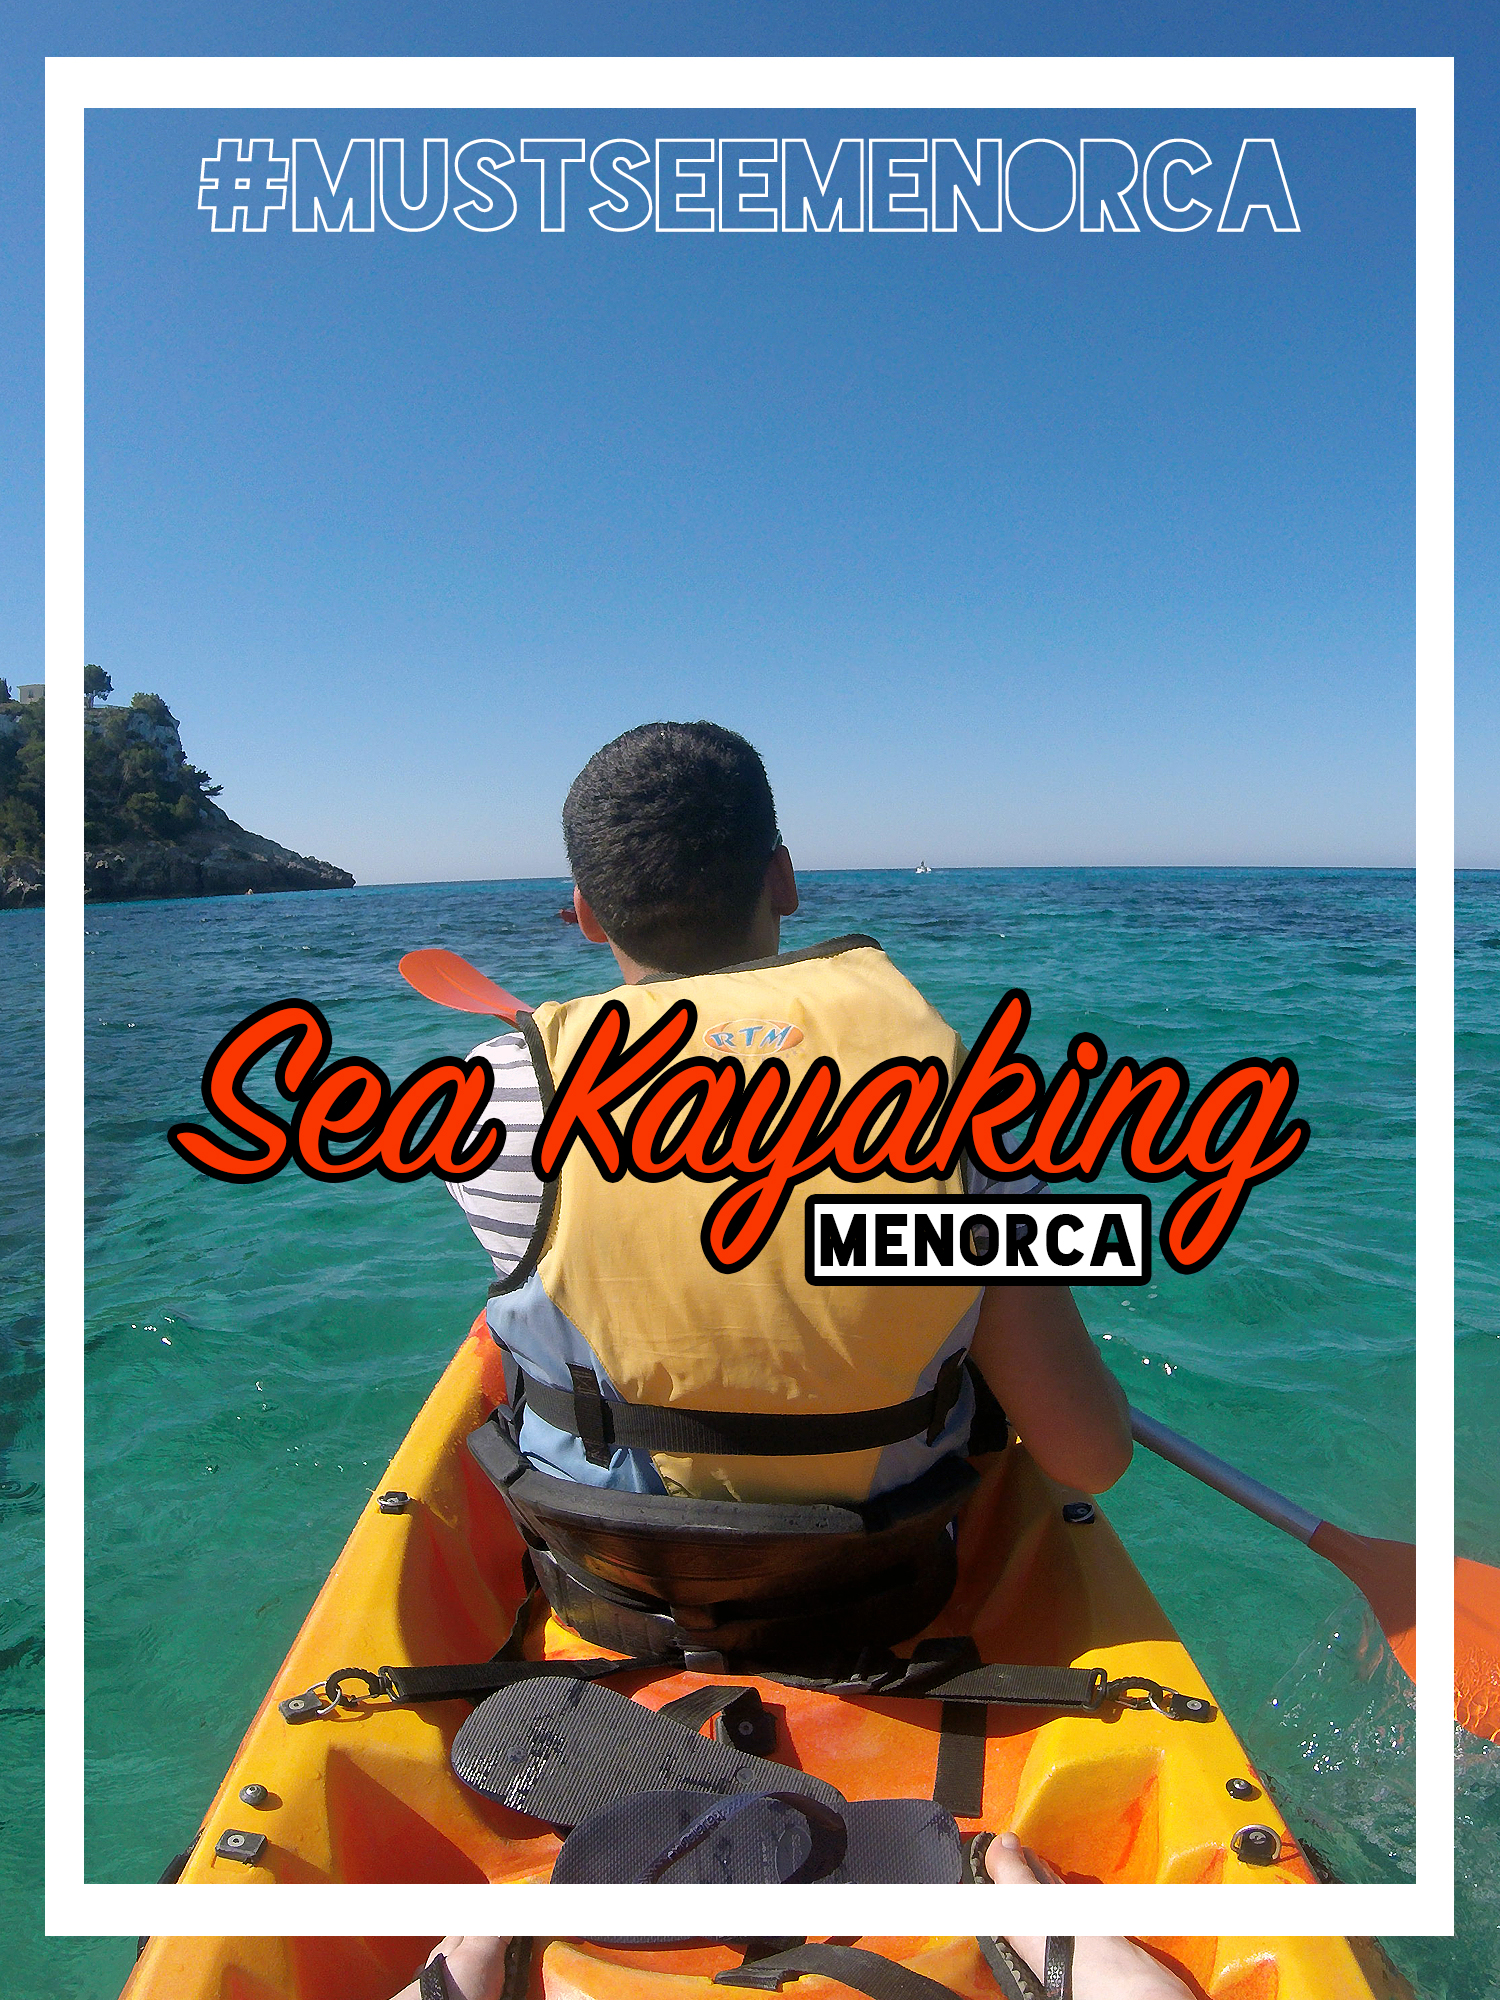 sea kayaking Menorca #MustSeeMenorca